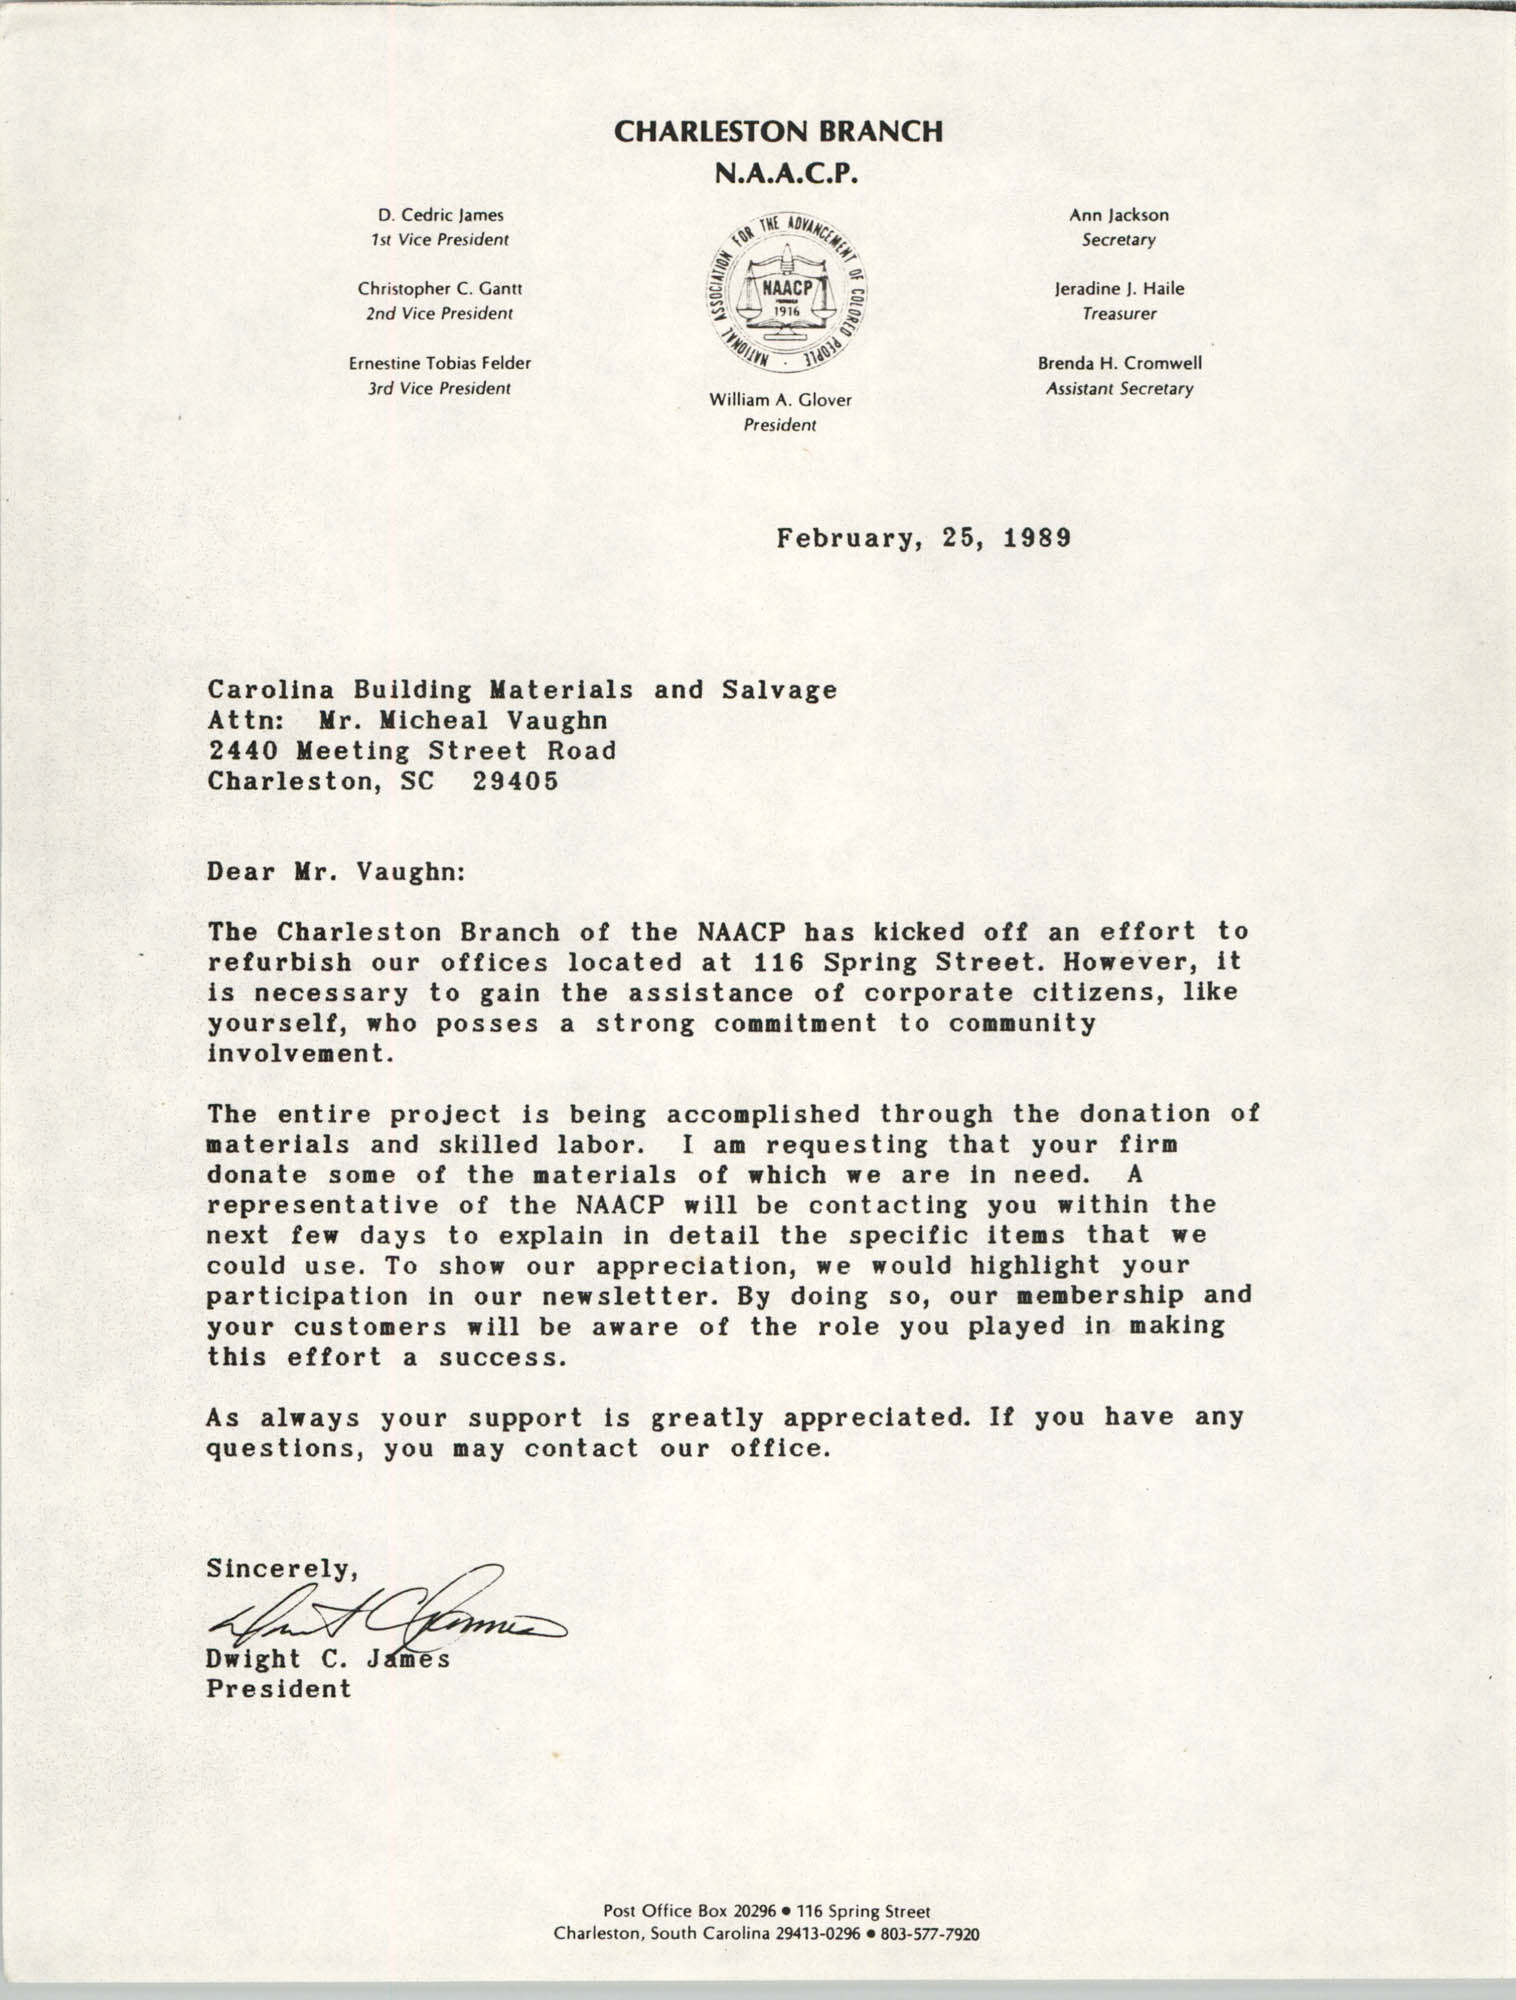 Charleston Chapter of the NAACP Fundraising Letters, February 25, 1989, Letter 1